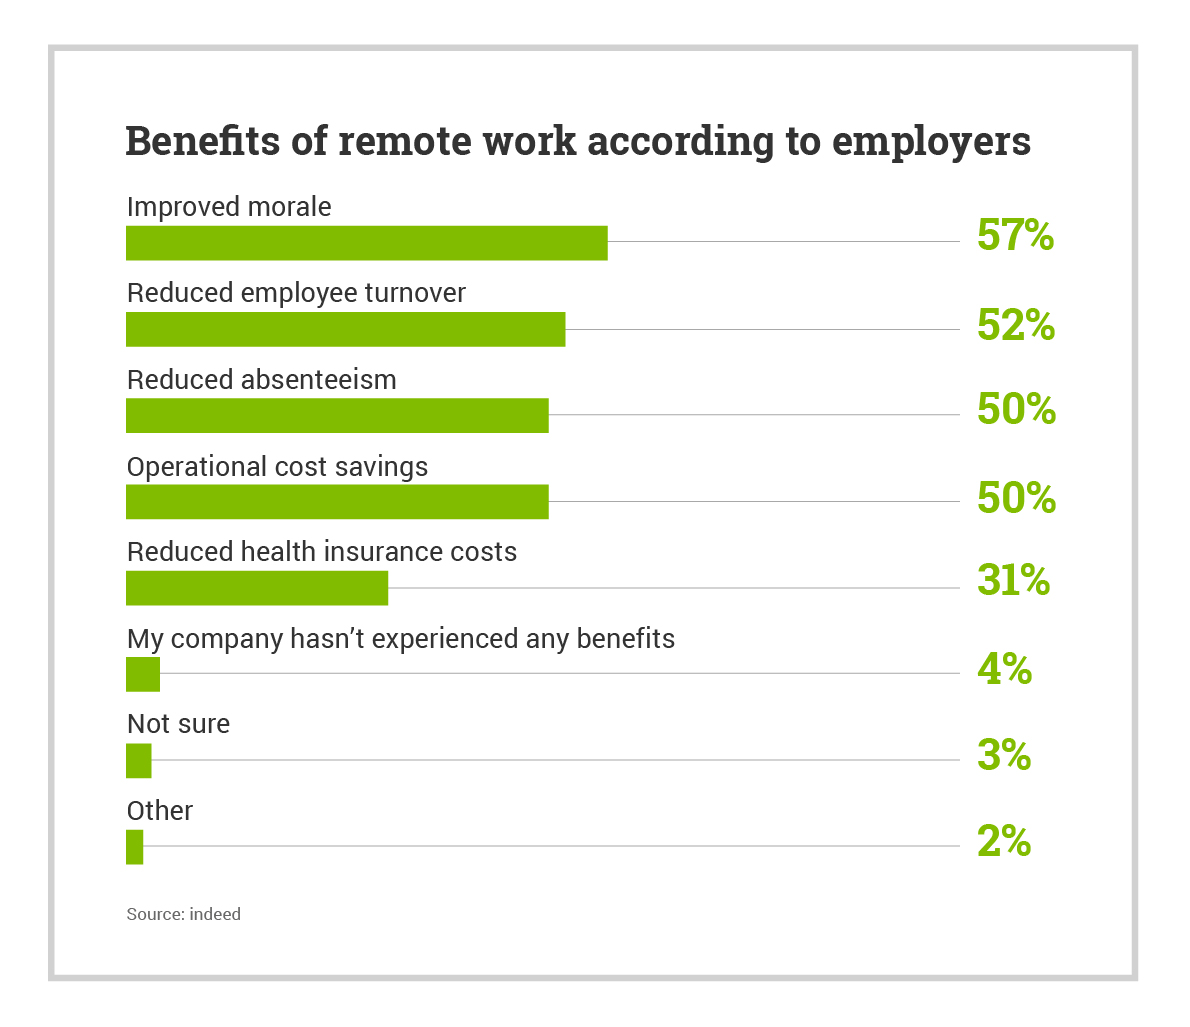 Benefits of remote work according to employers percentage chart